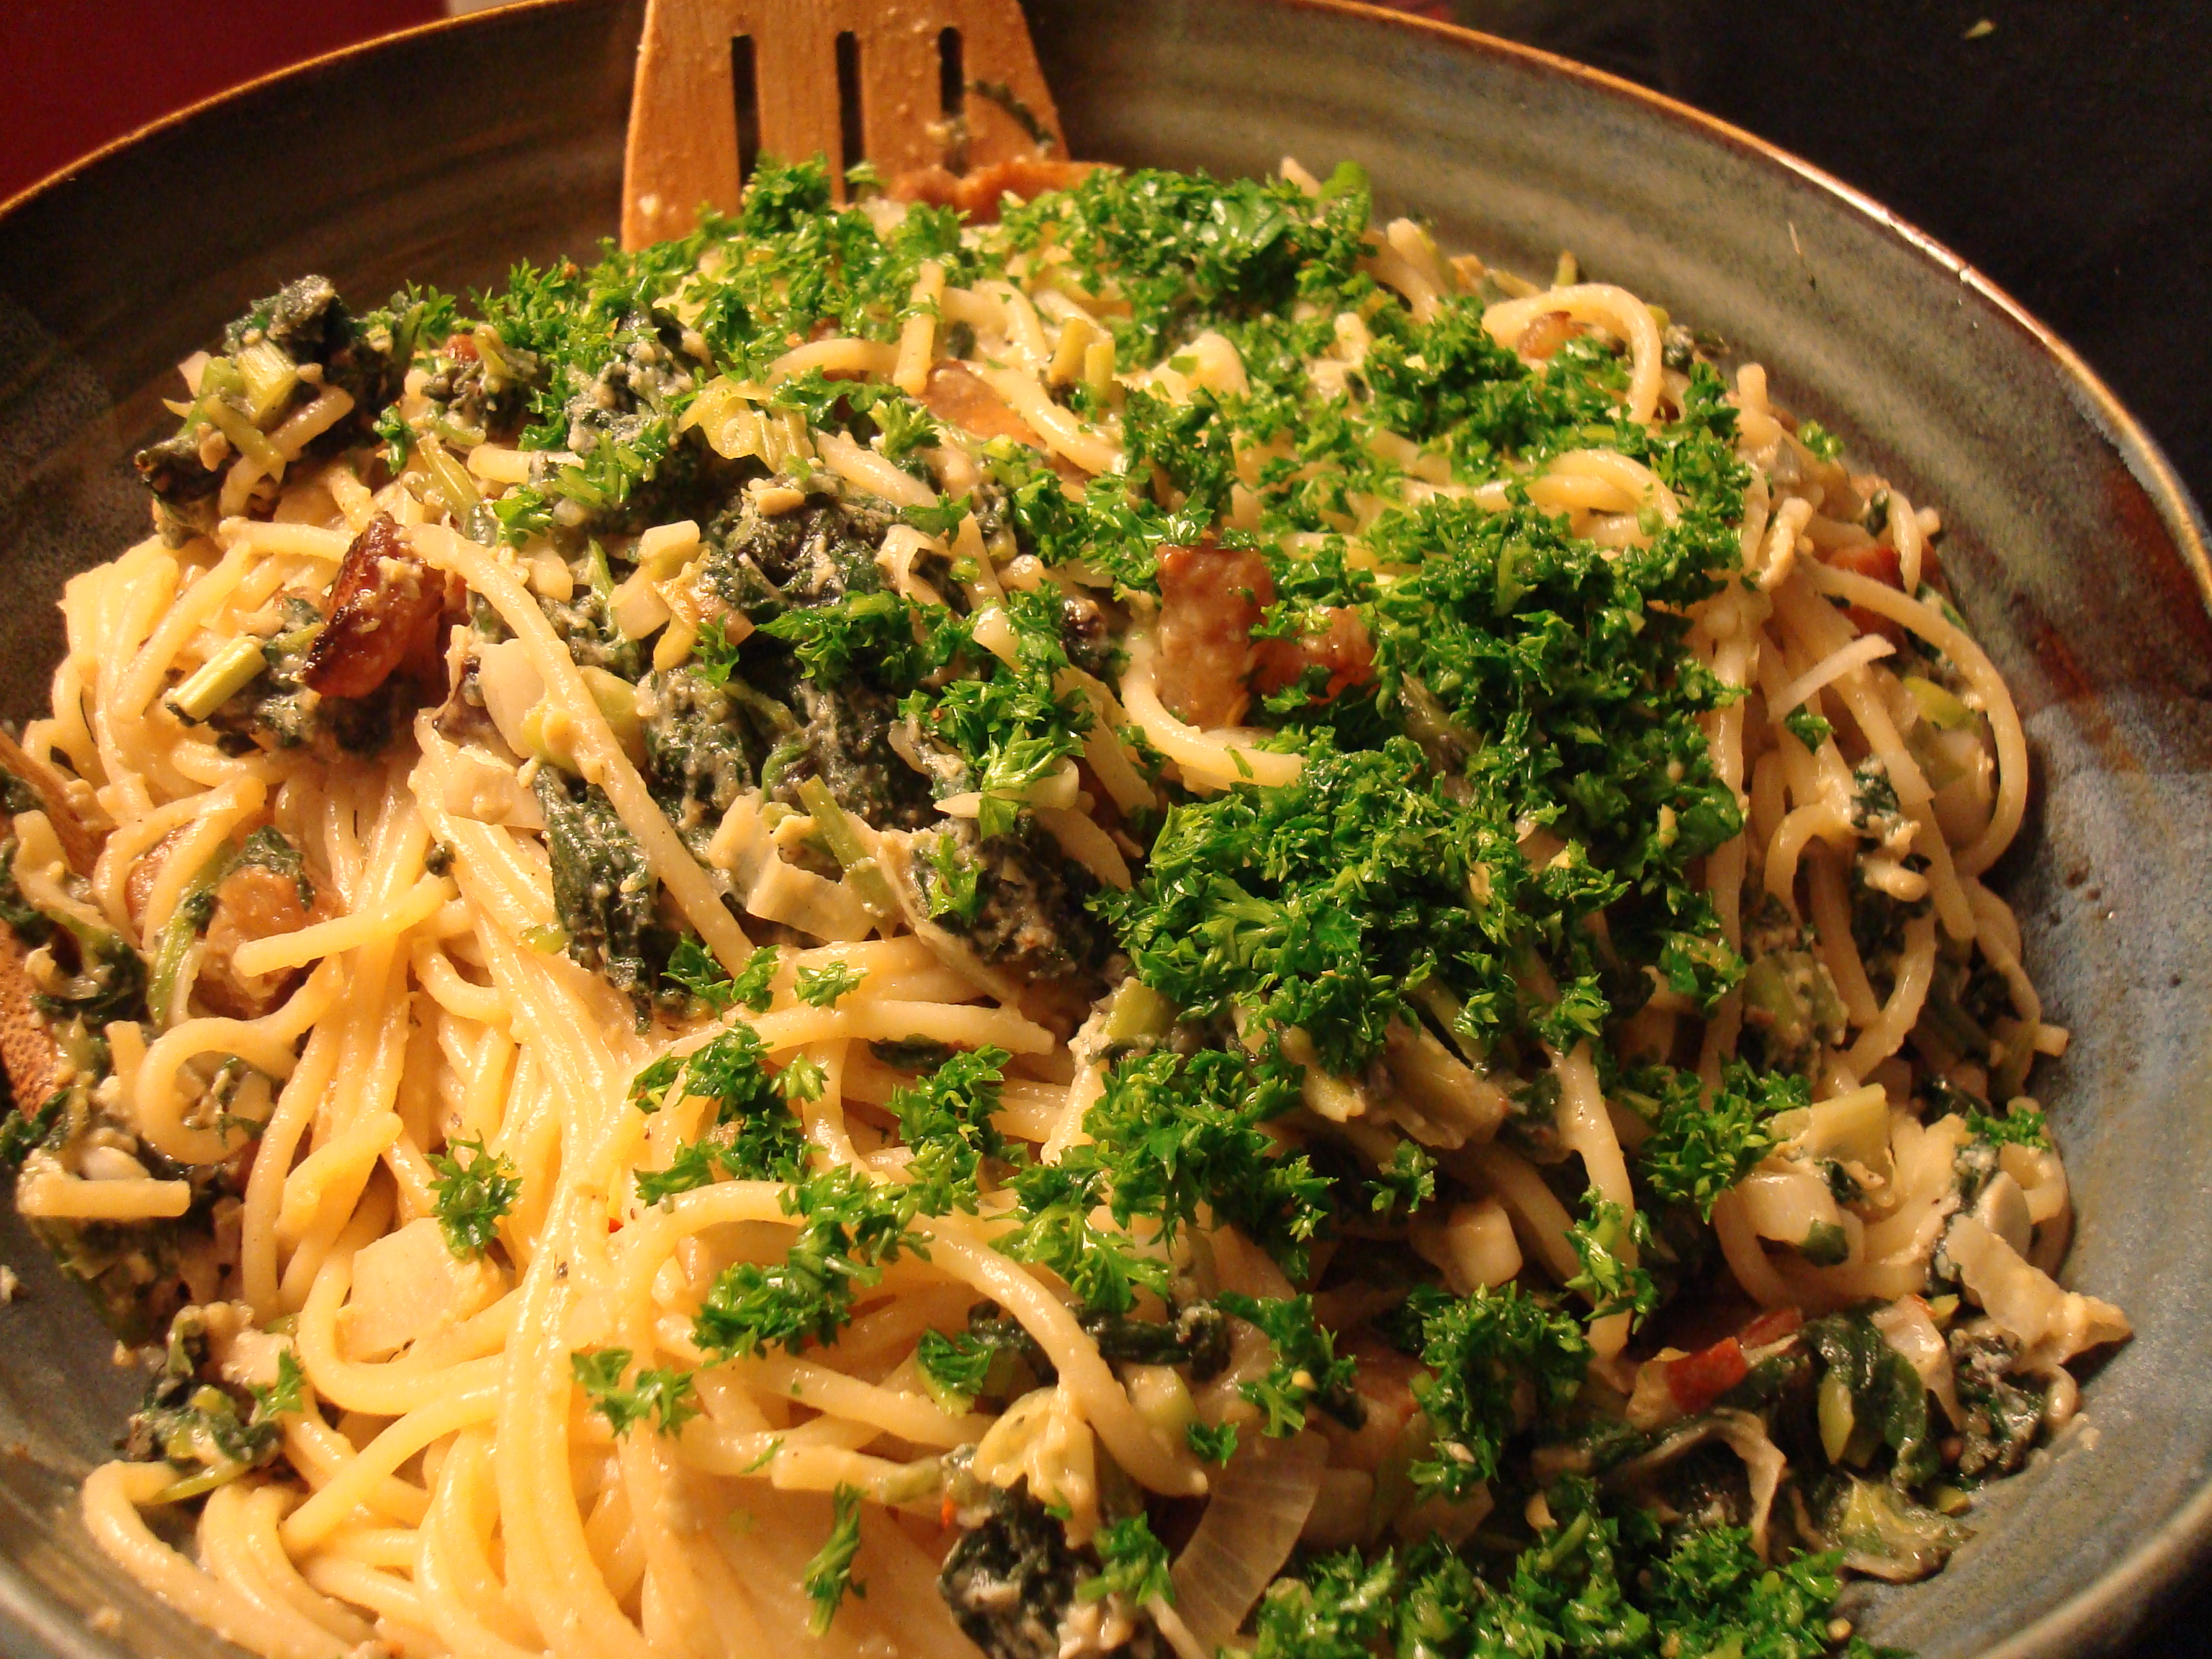 Spaghetti carbonara with nettles